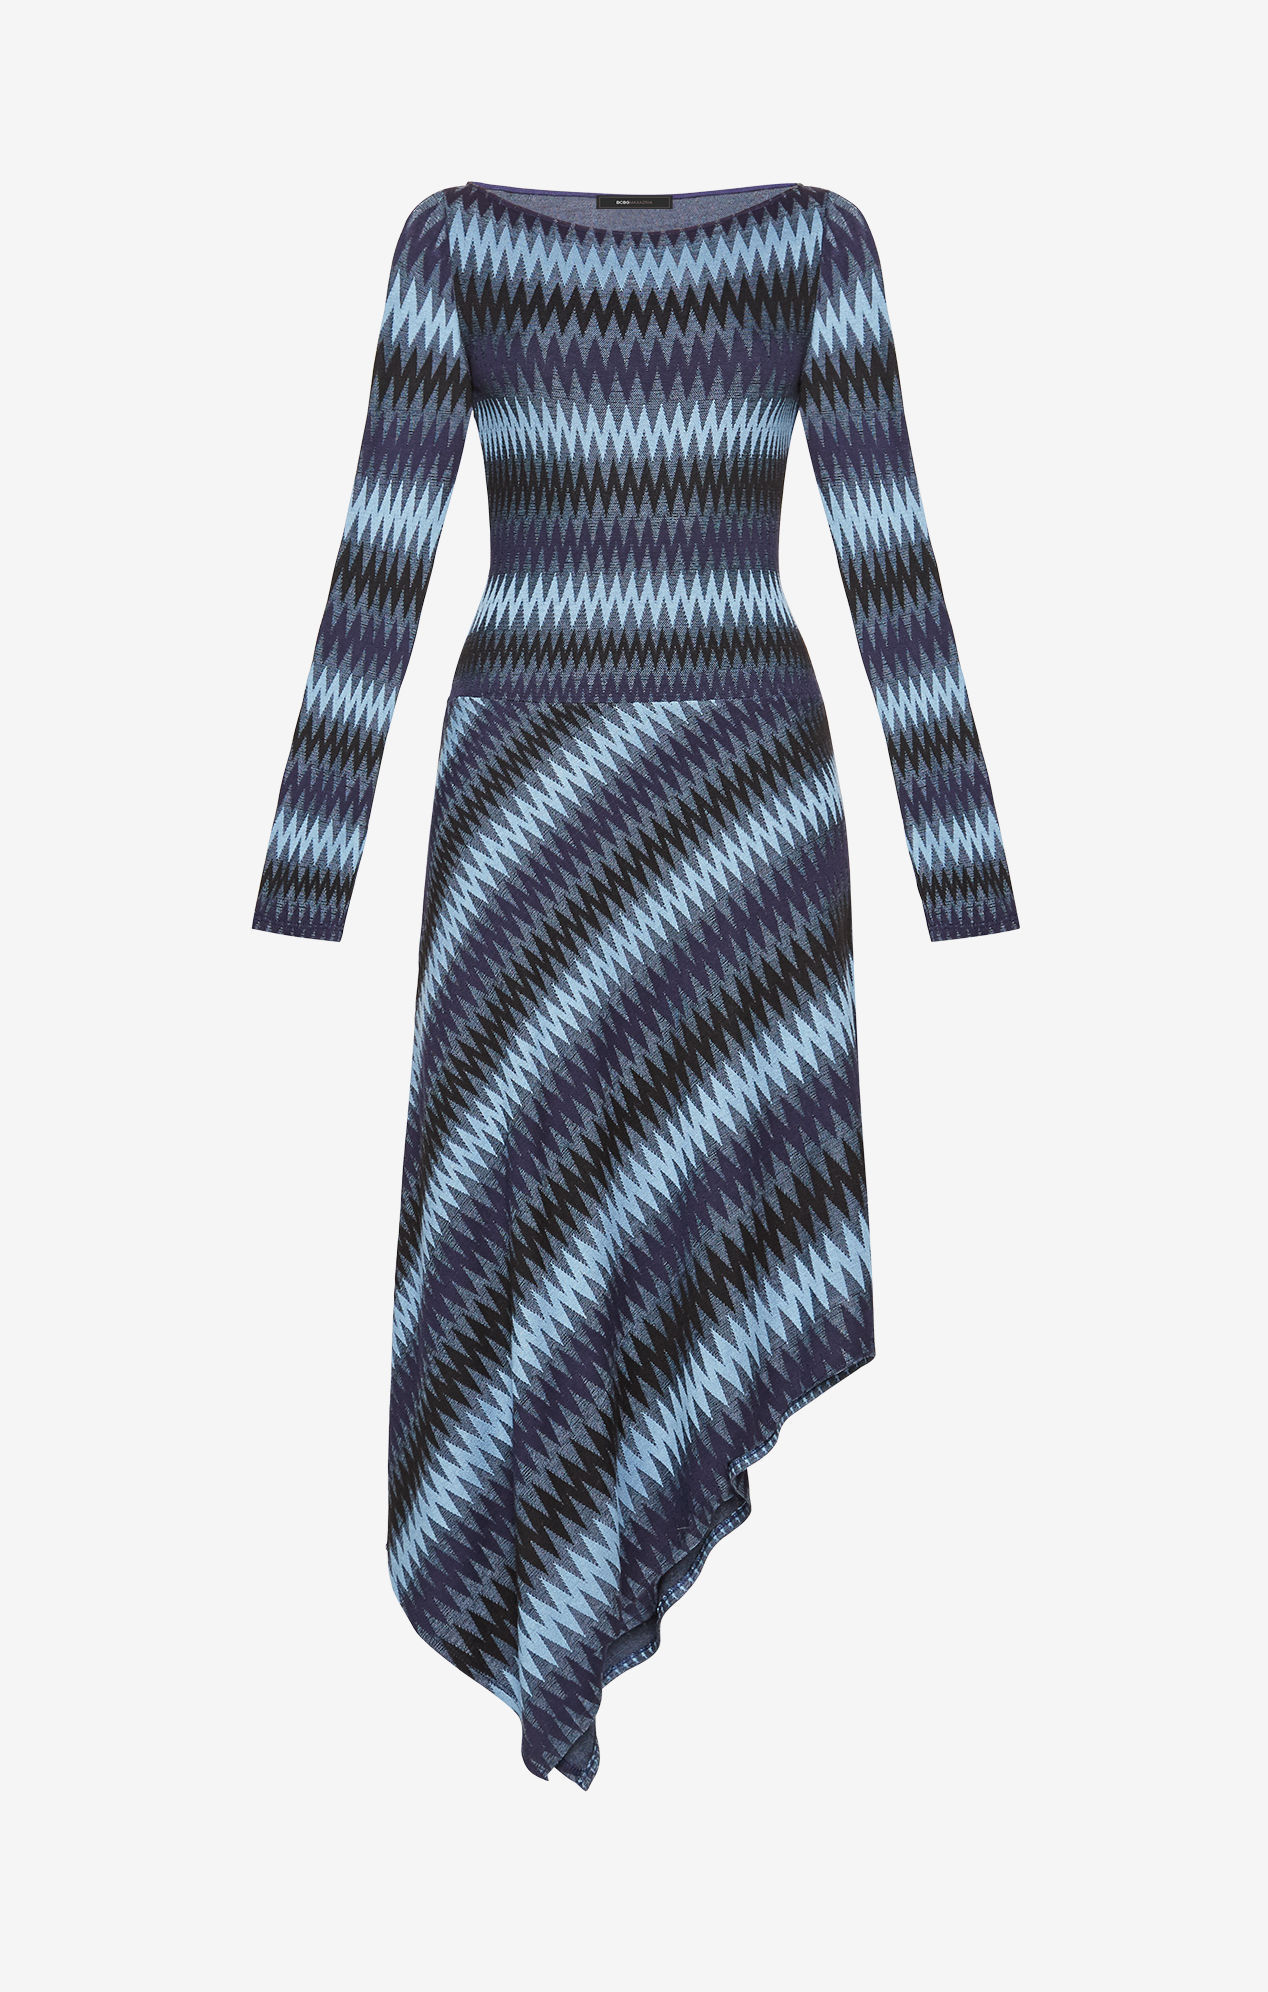 【BCBG MAXAZRIA】ドレス♪ Peighton Striped Dress